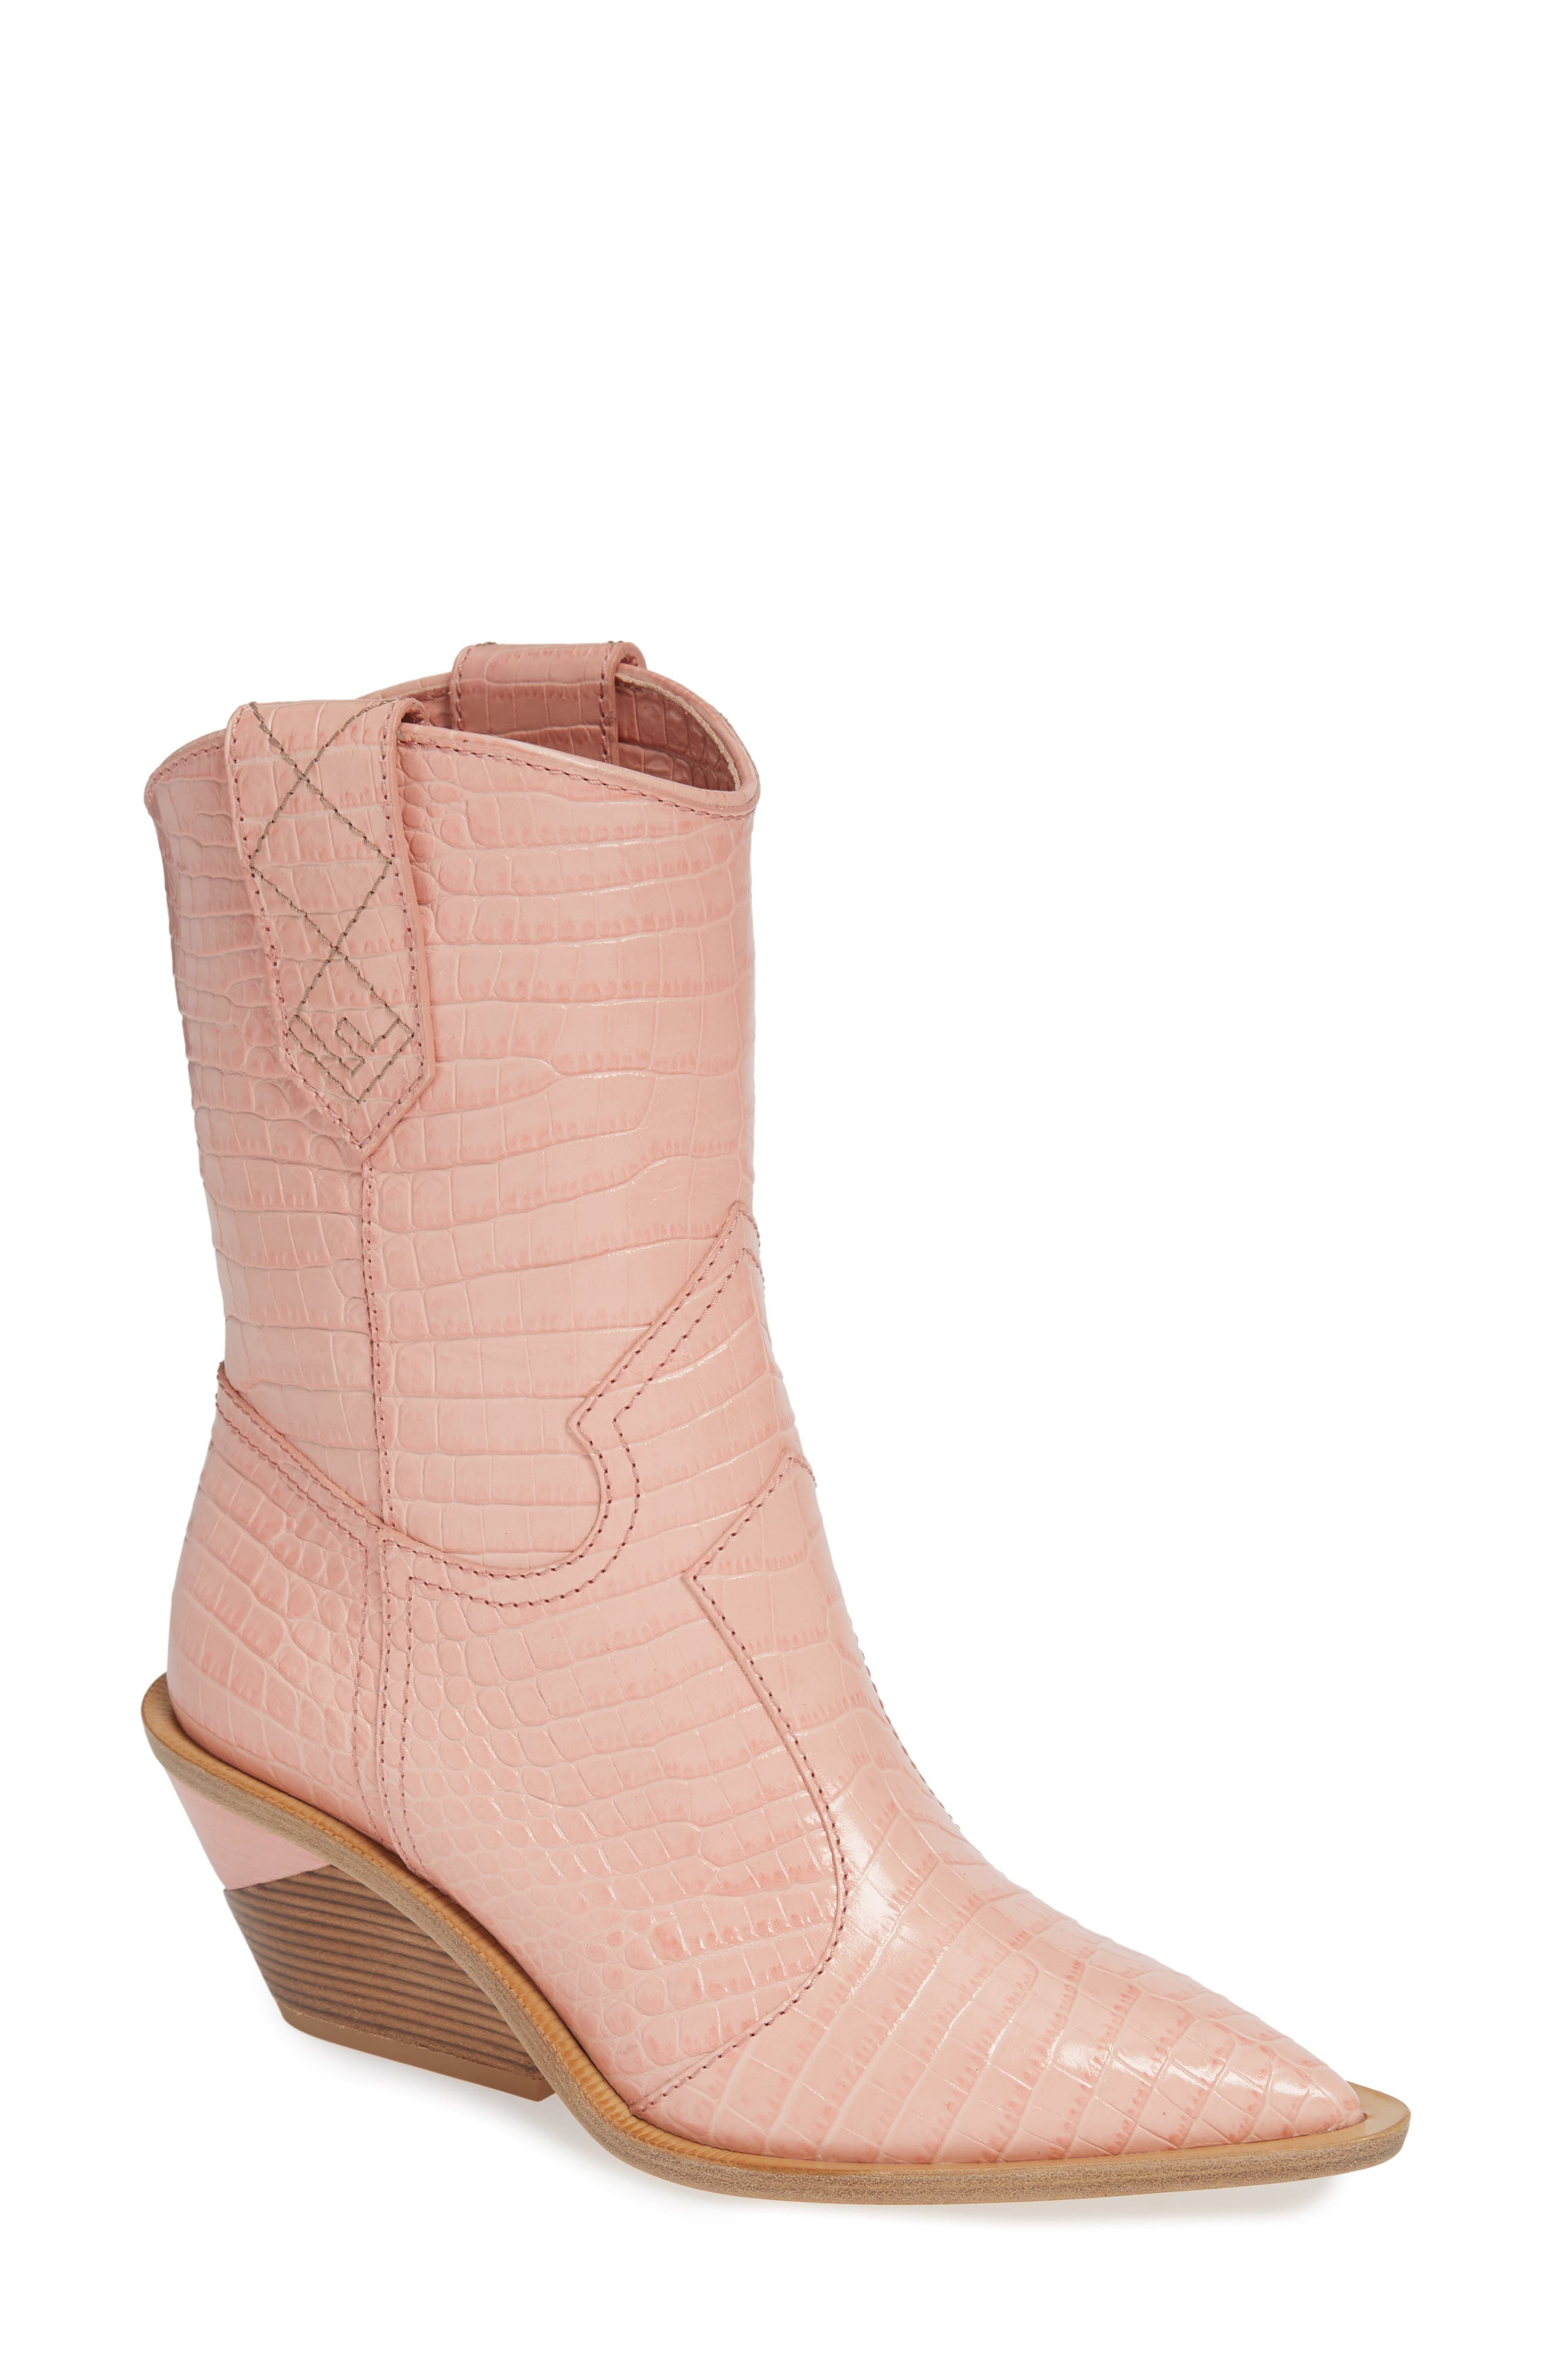 Cutwalk Mid Boot,                         Main,                         color, BABY PINK